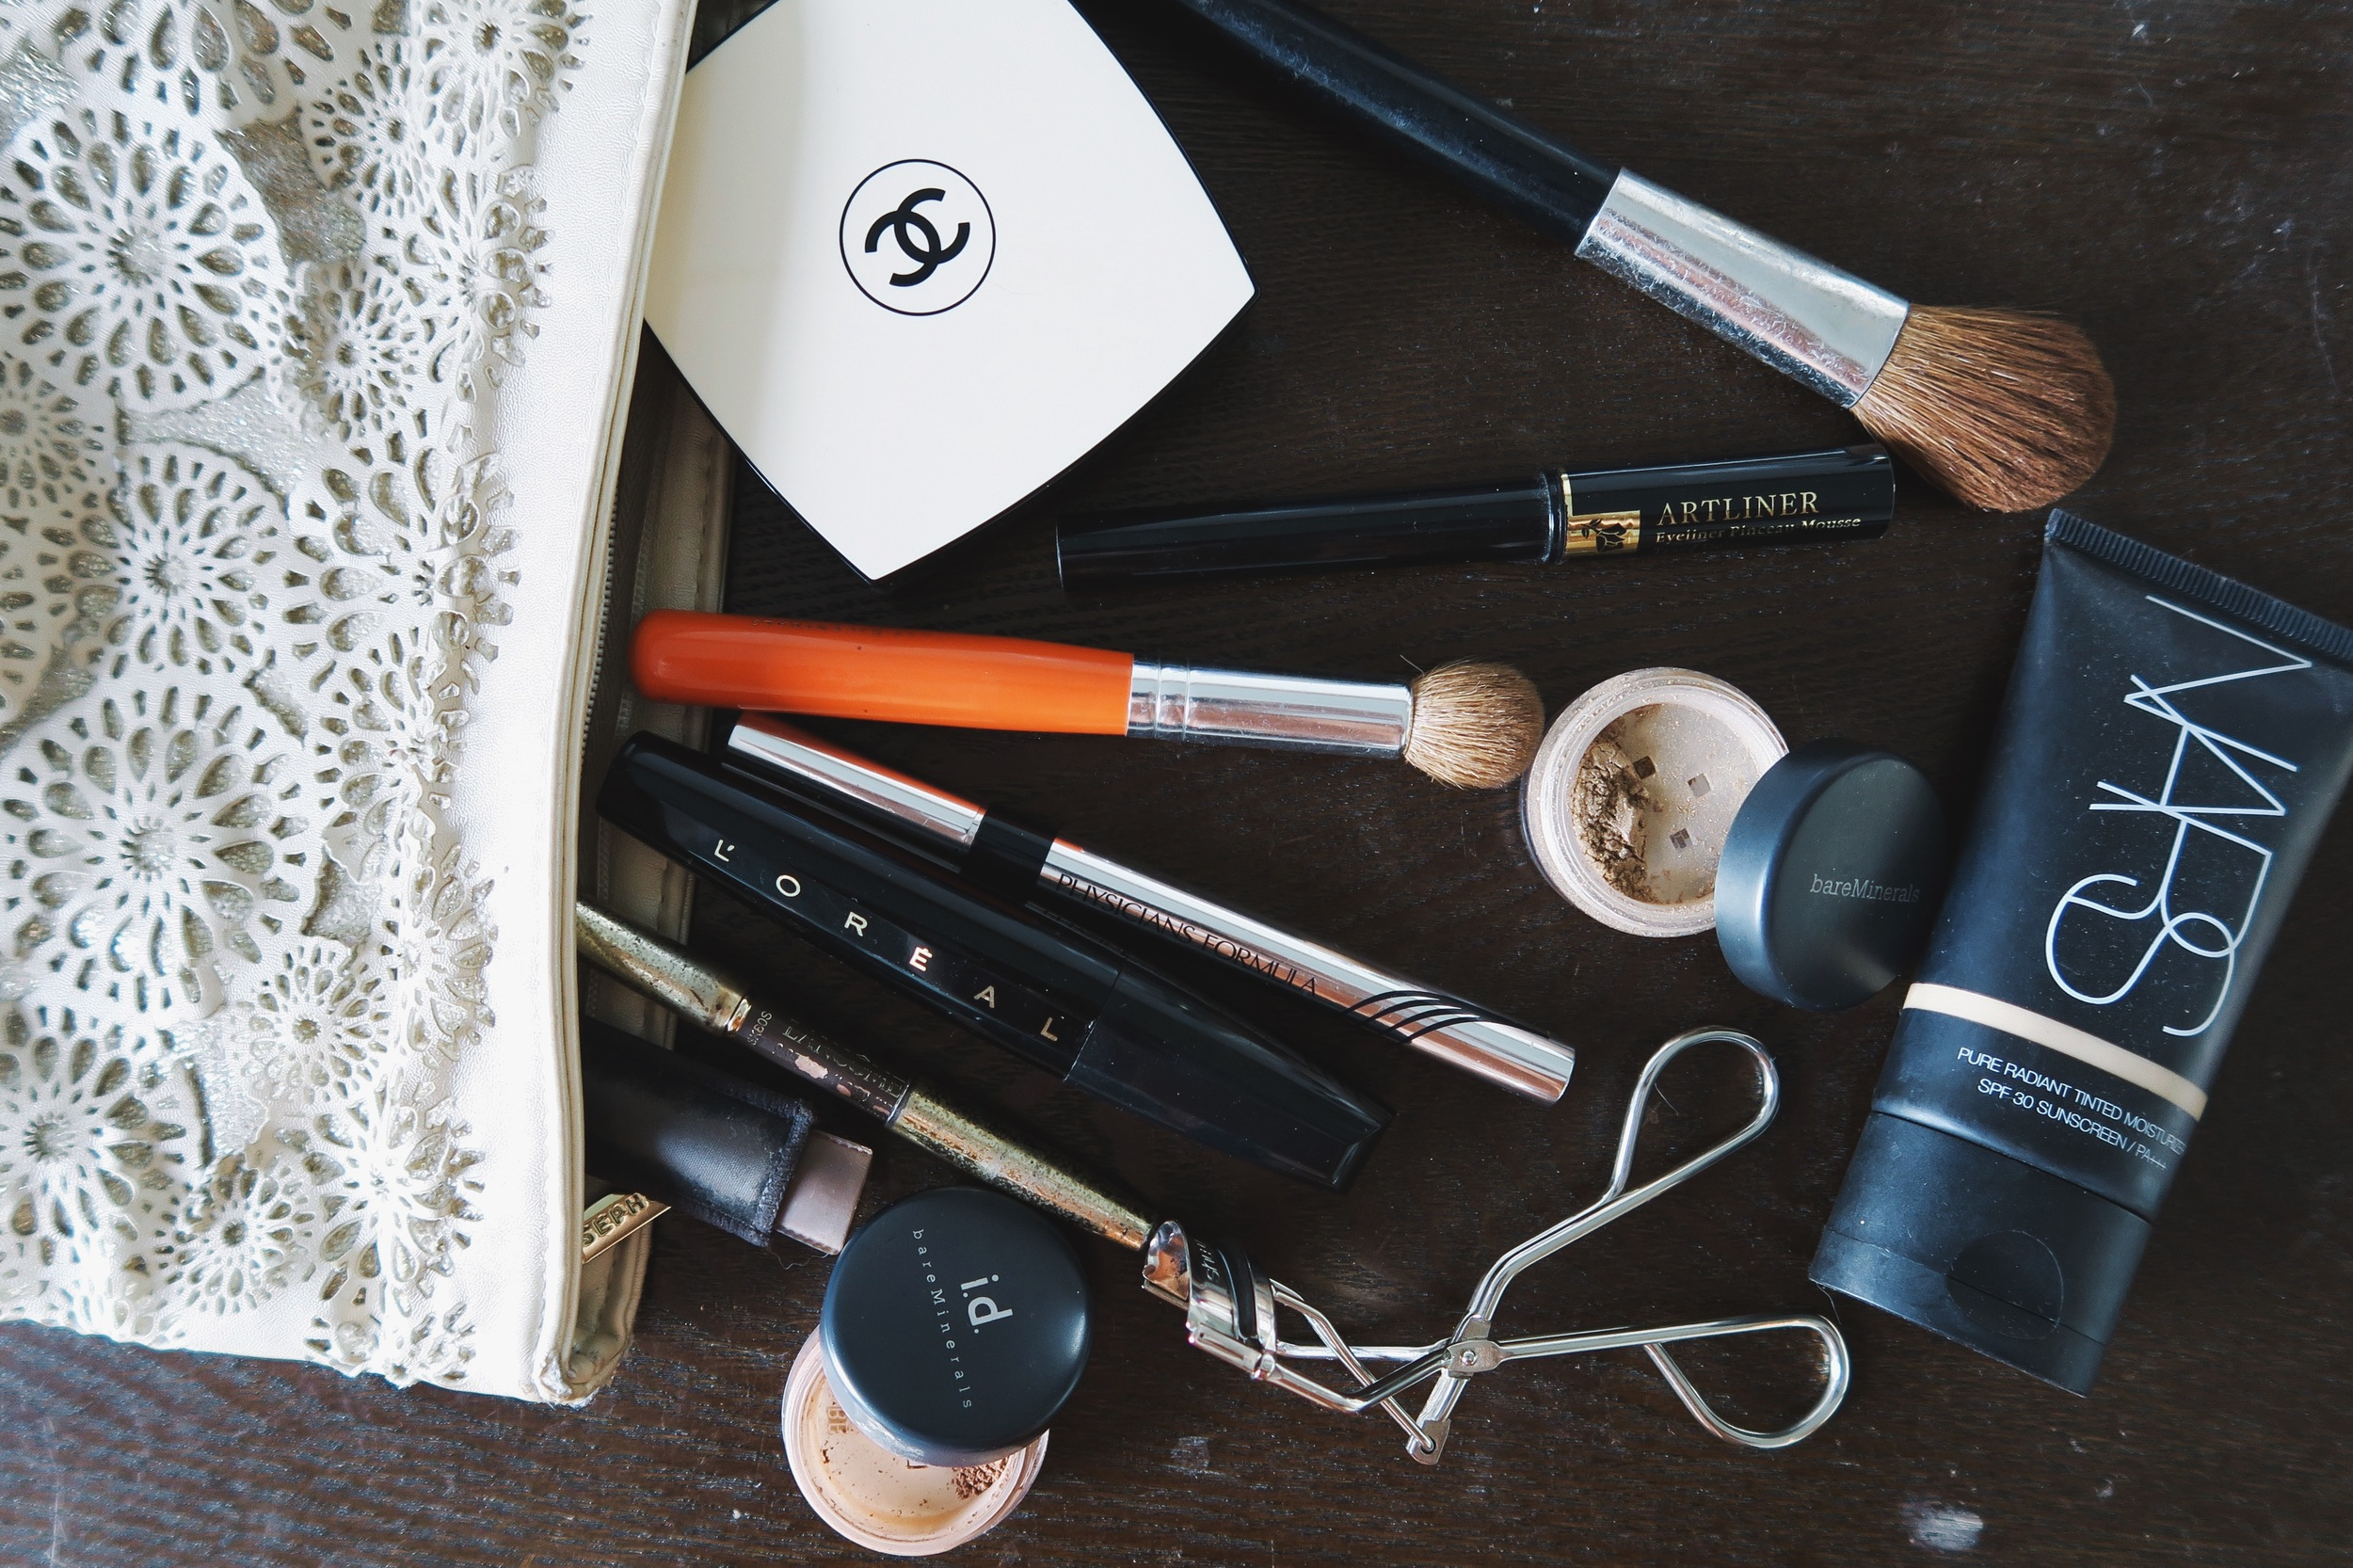 The contents of Maureen's Makeup Bag: Chanel Les Beiges N40, Lancome Artliner, Bare Minerals Shadow in Summer Physician's Formula Eye Liner, L'Oreal Voluminous Mascara, Lancome Le Crayon Poudre in Brunet,Bare Minerals Summer I.D. in Cashmere, Shu Uemura Eyelash curlers, Nars Pure Radiand Tinted Moisturizer in Shade #2.